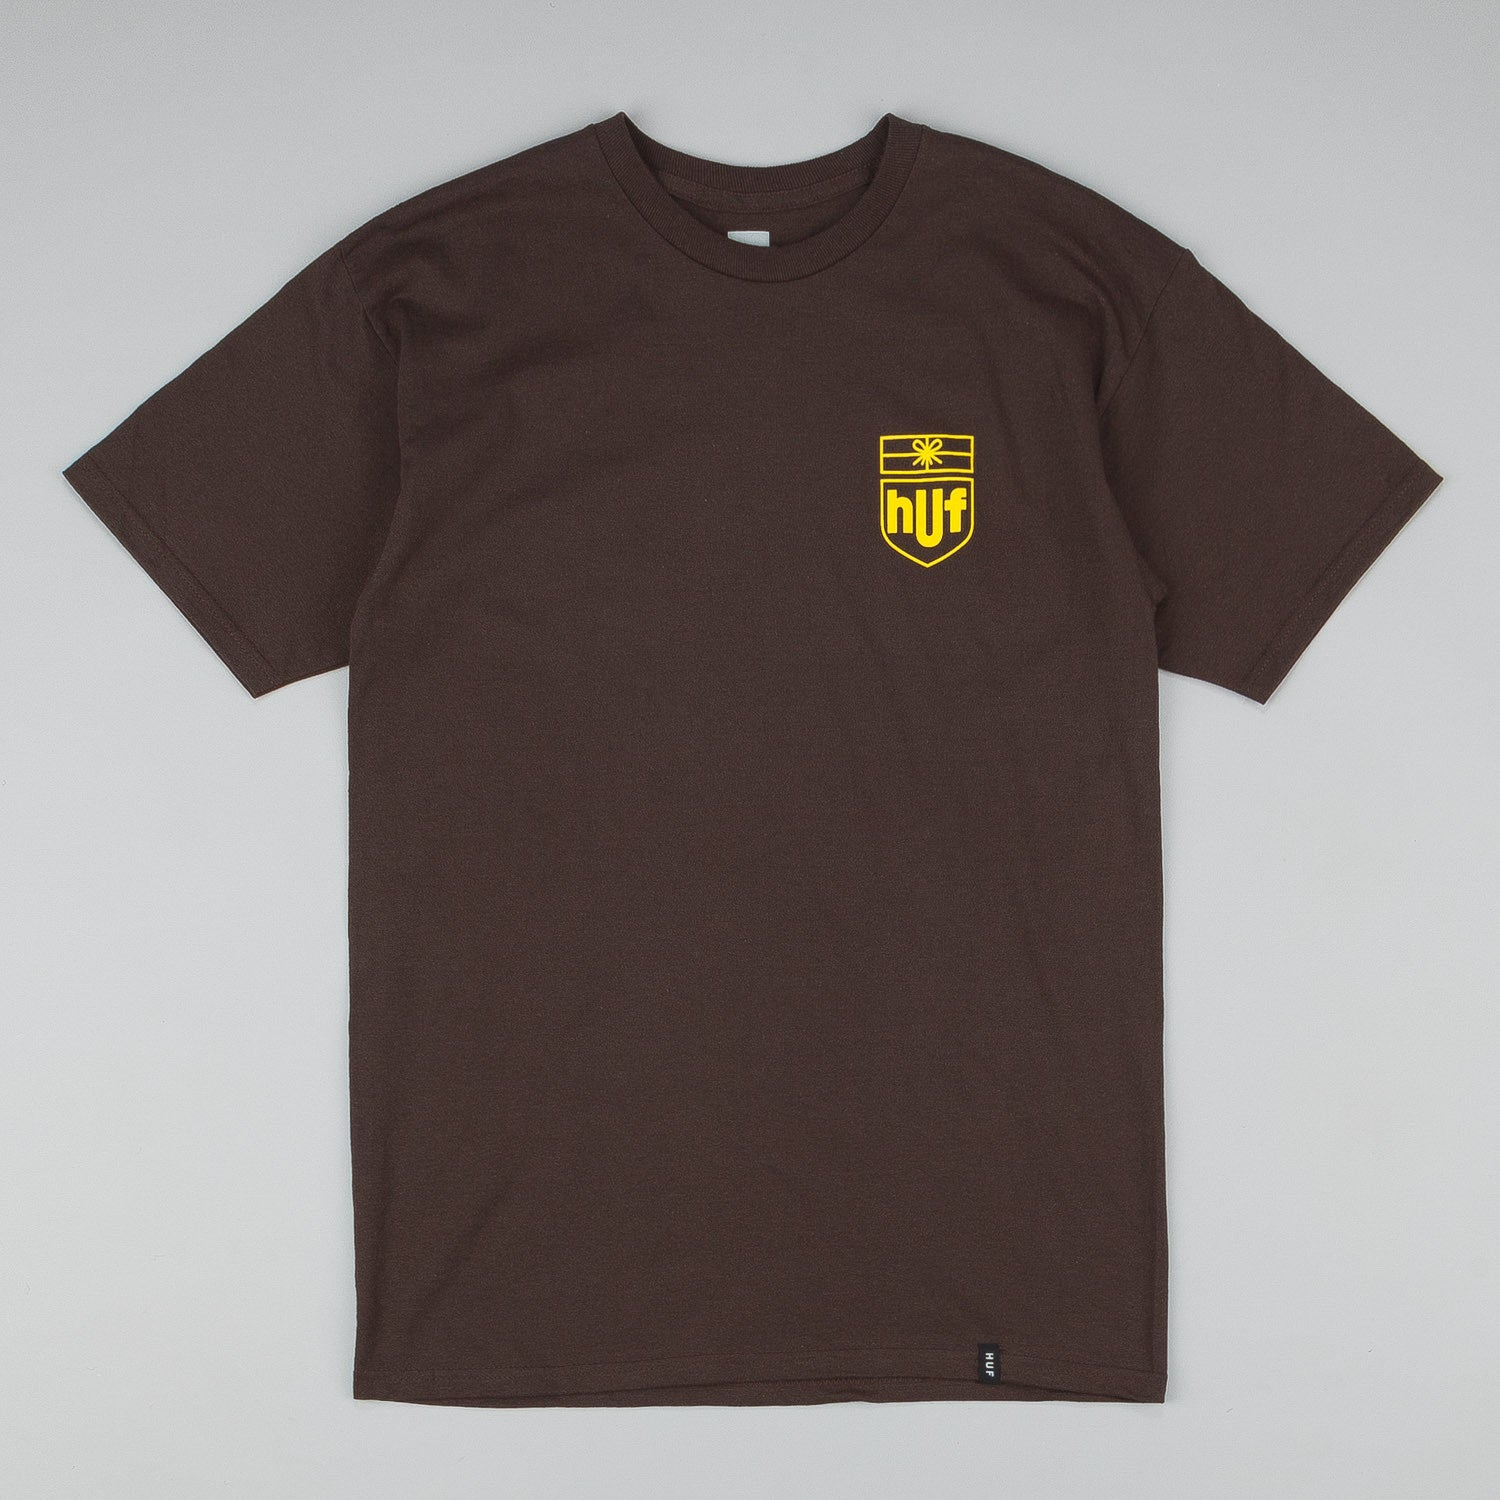 Huf Delivery T-Shirt